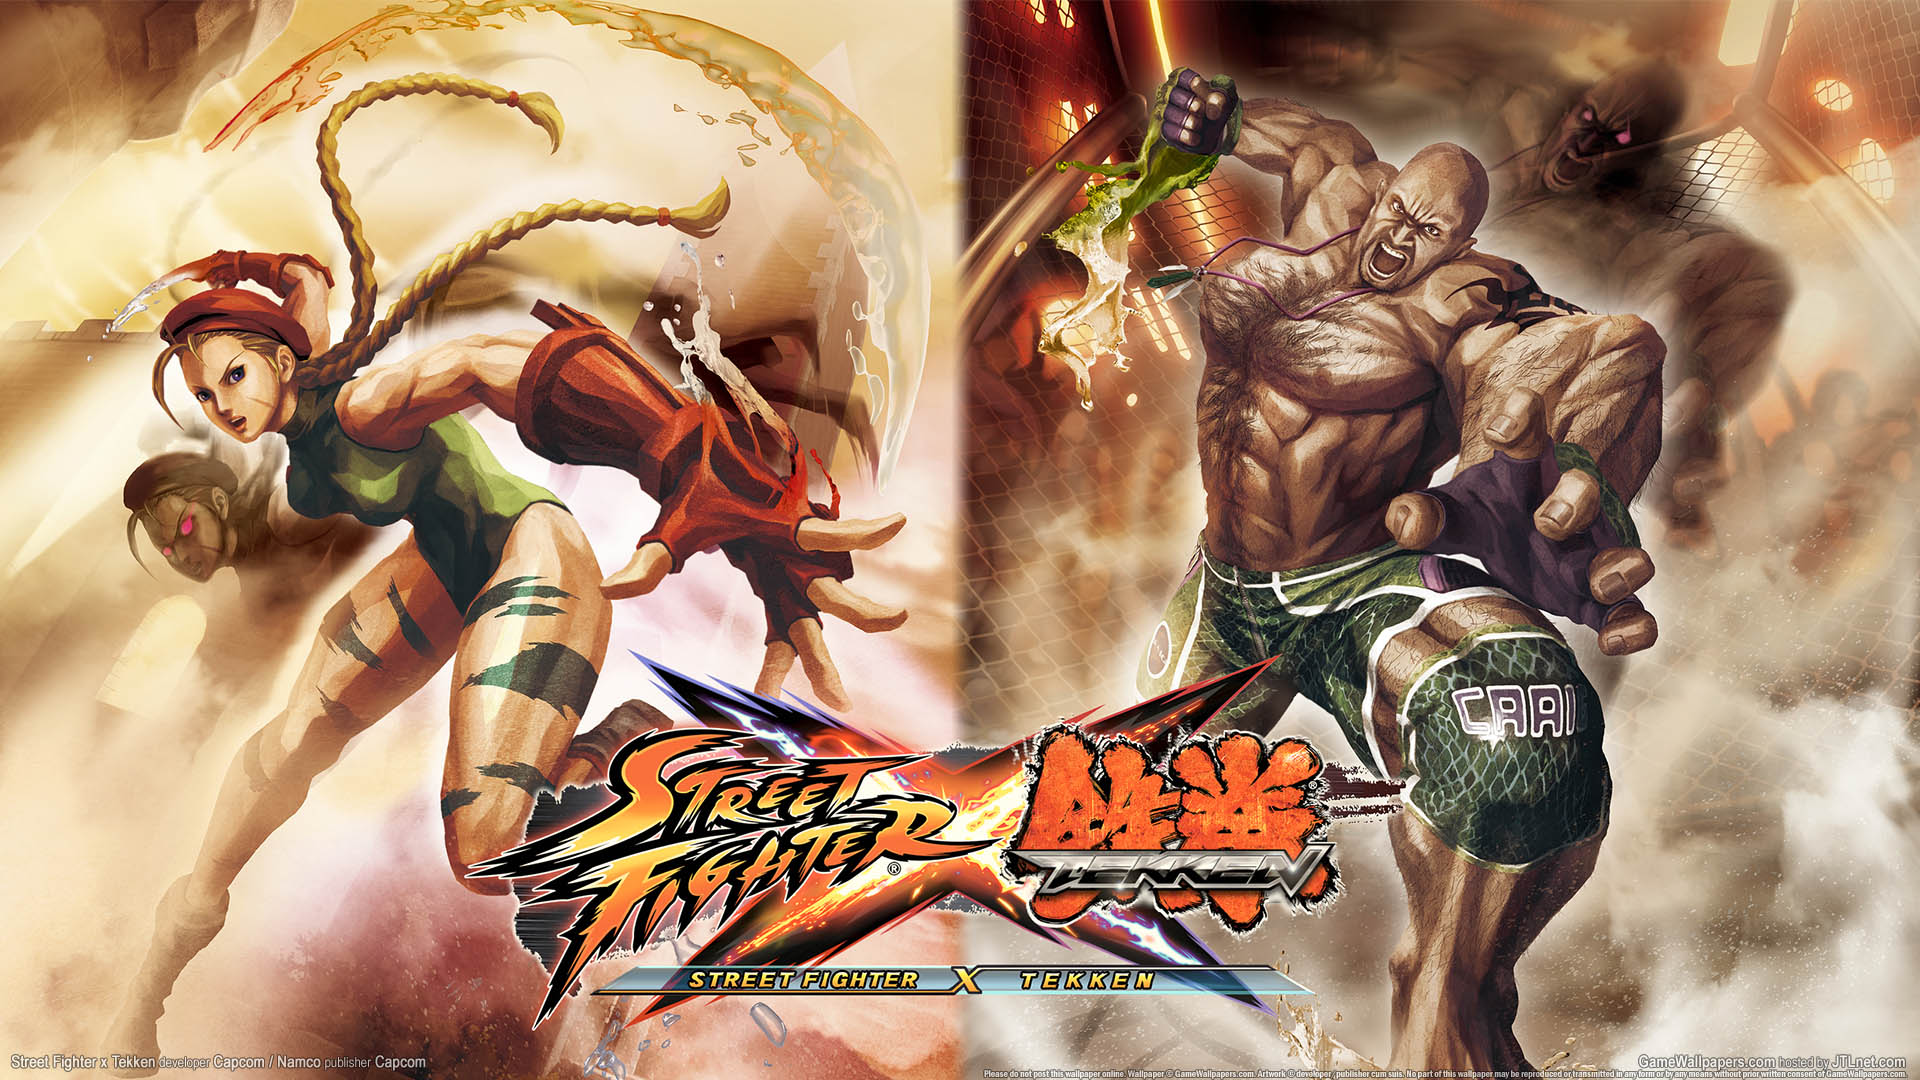 Street Fighter X Tekken Wallpaper 01 1920x1080